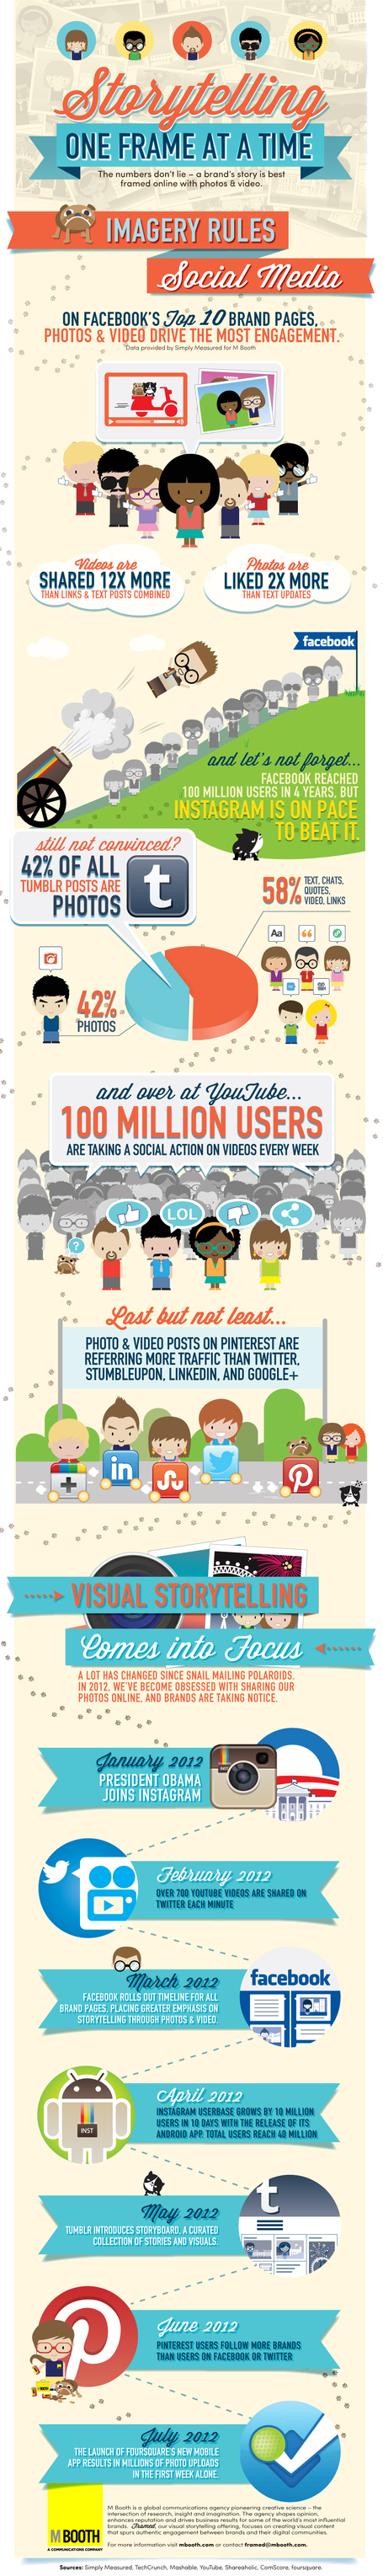 How Powerful is Visual Content - here are the Facts & Figures [Infographic] | Curation, Social Business and Beyond | Scoop.it